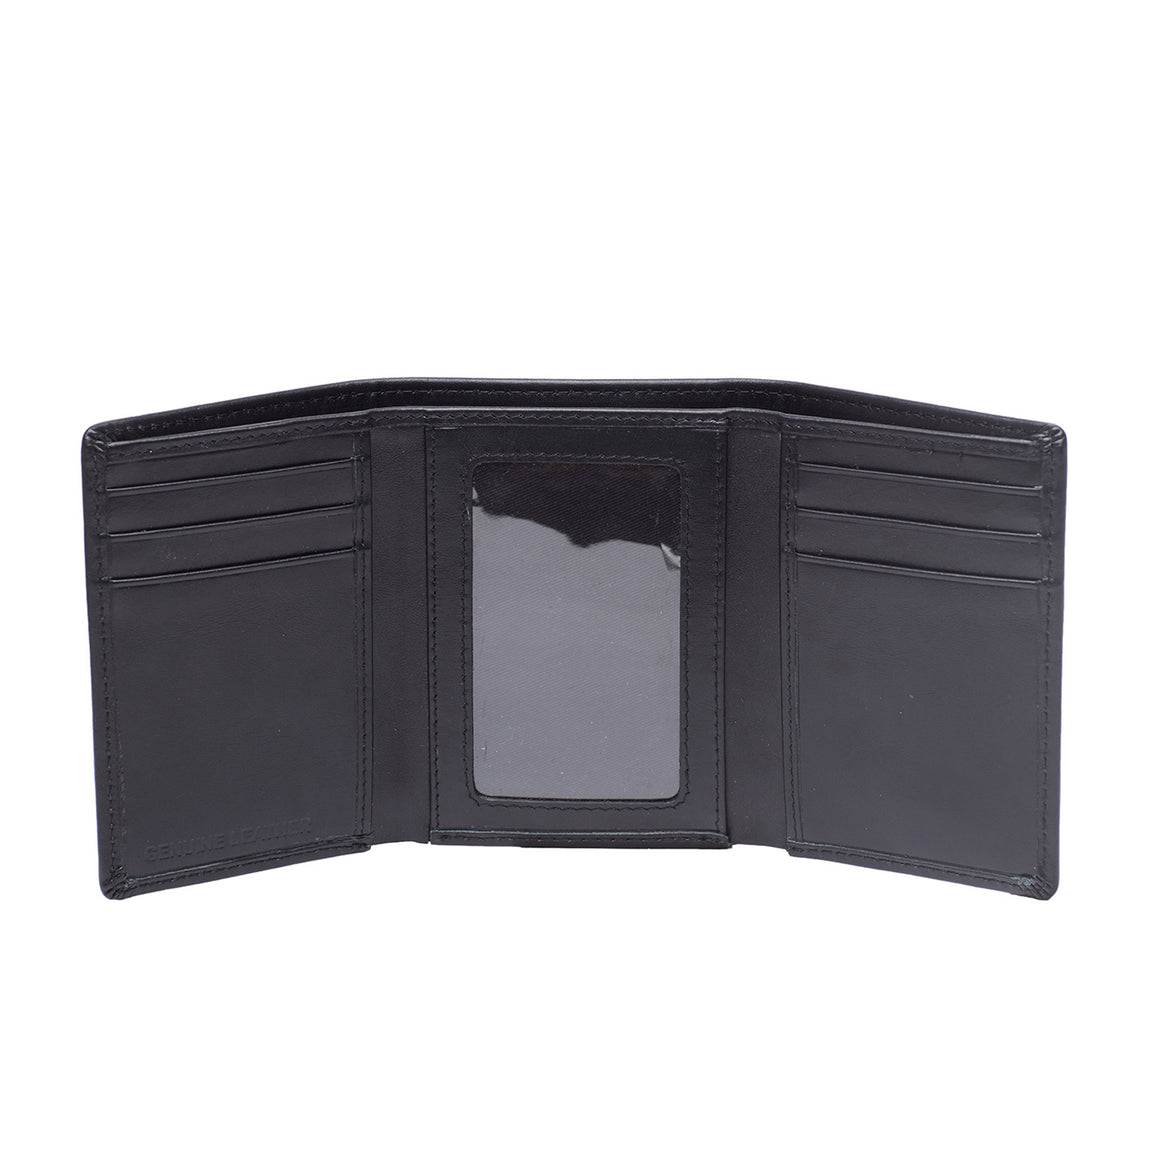 WT 0033 - TOHL SETTALA MEN'S WALLET - CHARCOAL BLACK